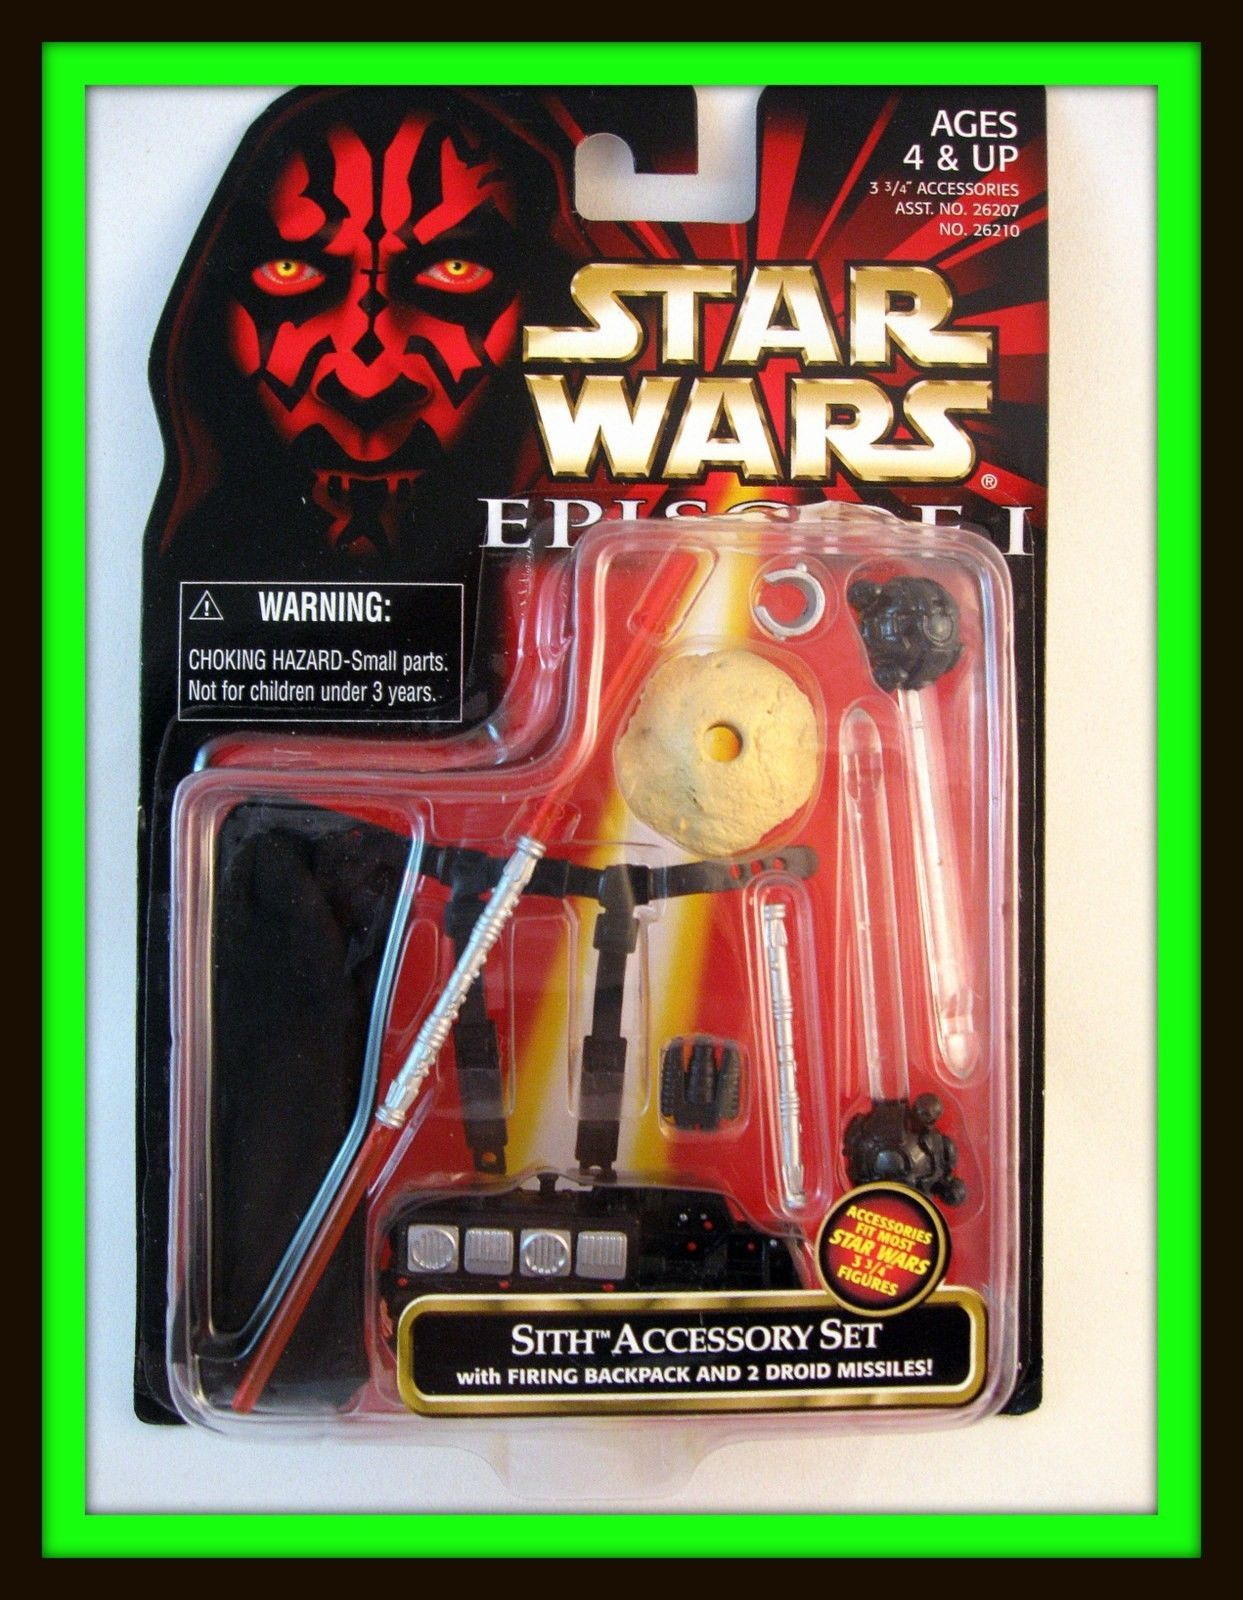 Primary image for STAR WARS ACCESSORY SET CARDED SITH WITH FIRING BACKPACK AND 2 DROID MISSILES